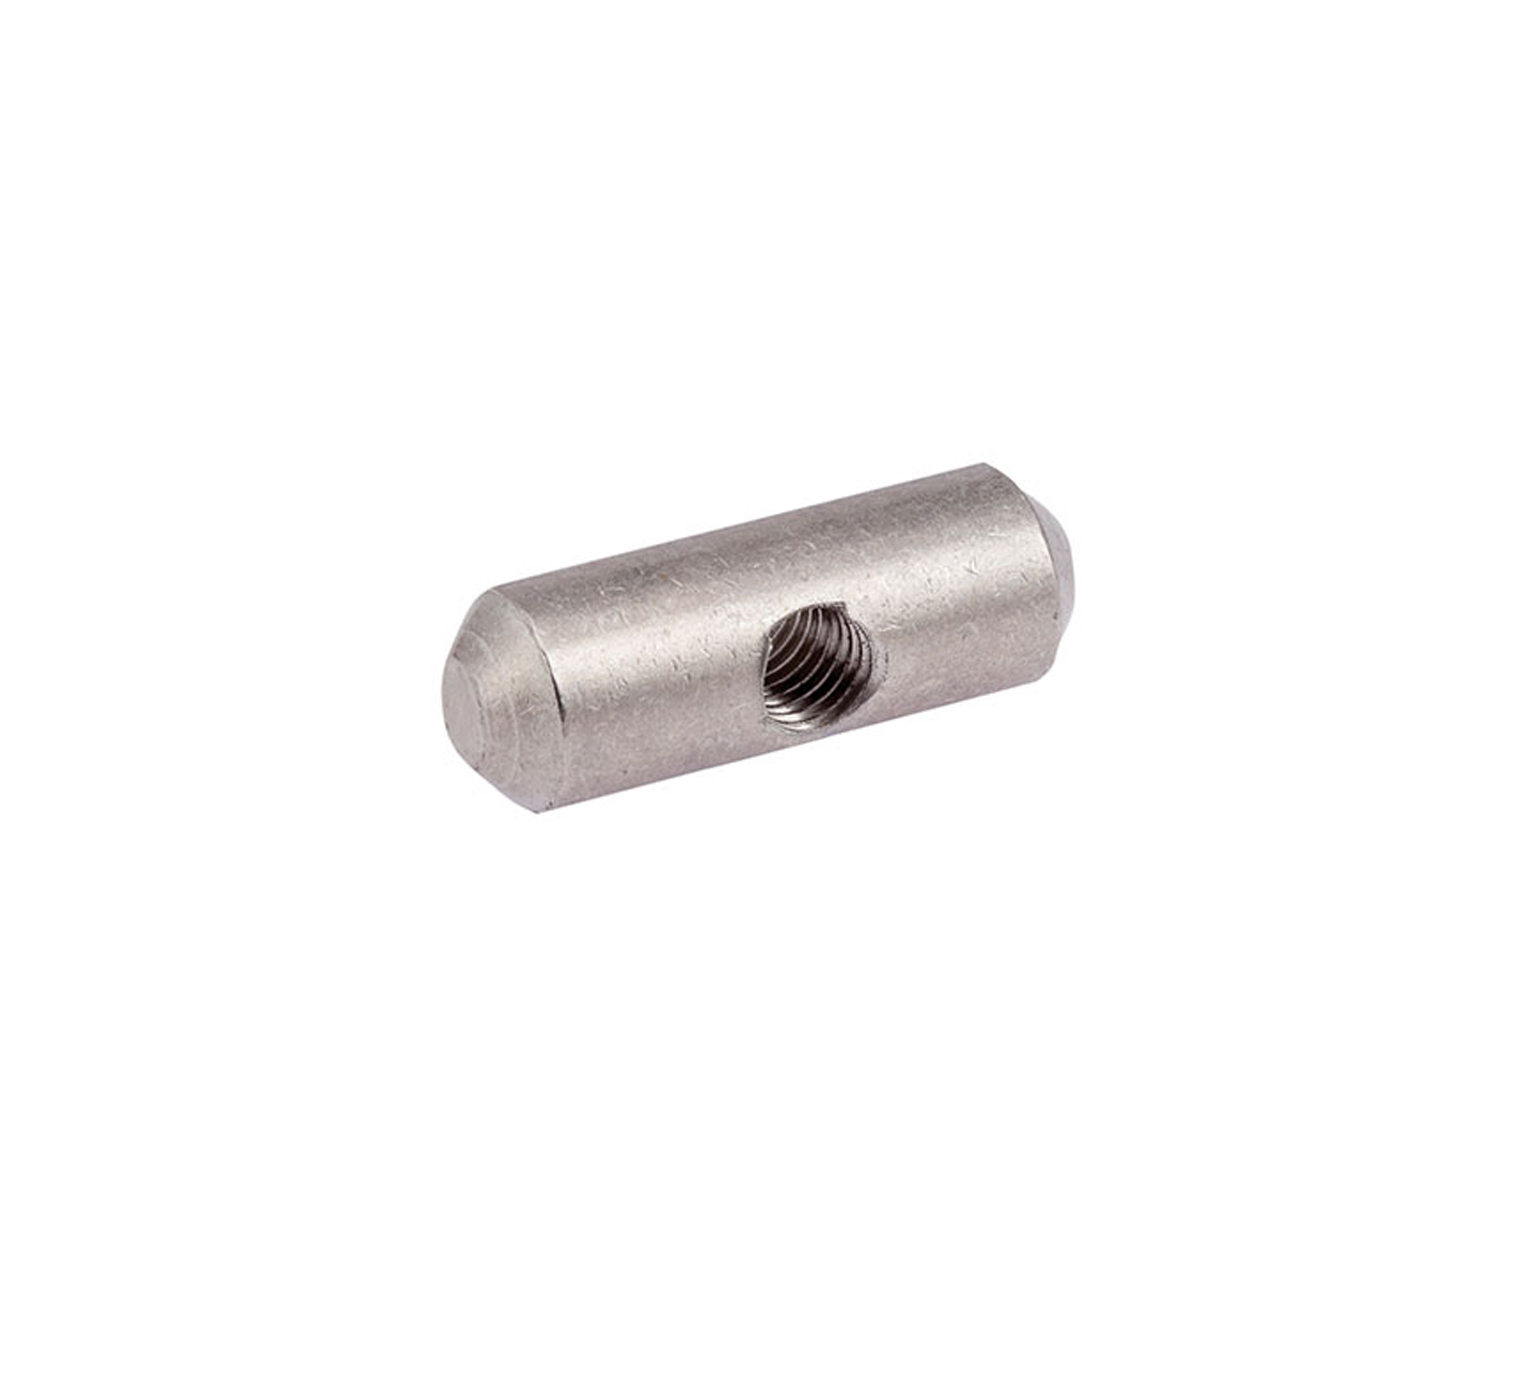 1021497 Stainless Steel Pin - 0.625 x 1.791 in alt 1